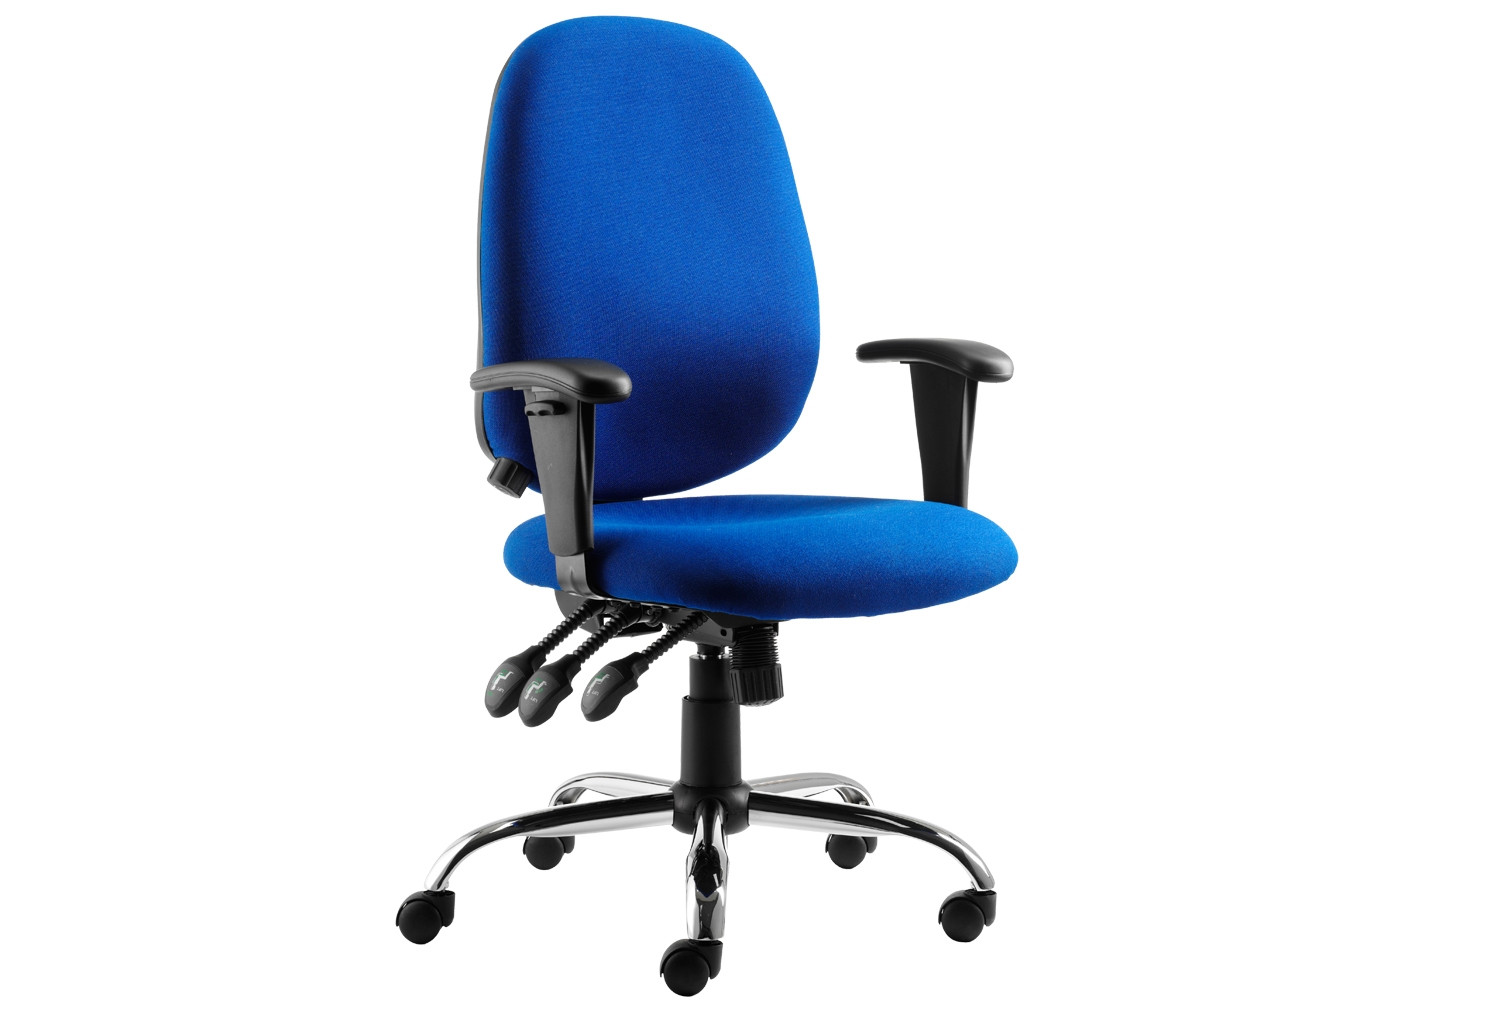 Next-Day Compton Operator Chair